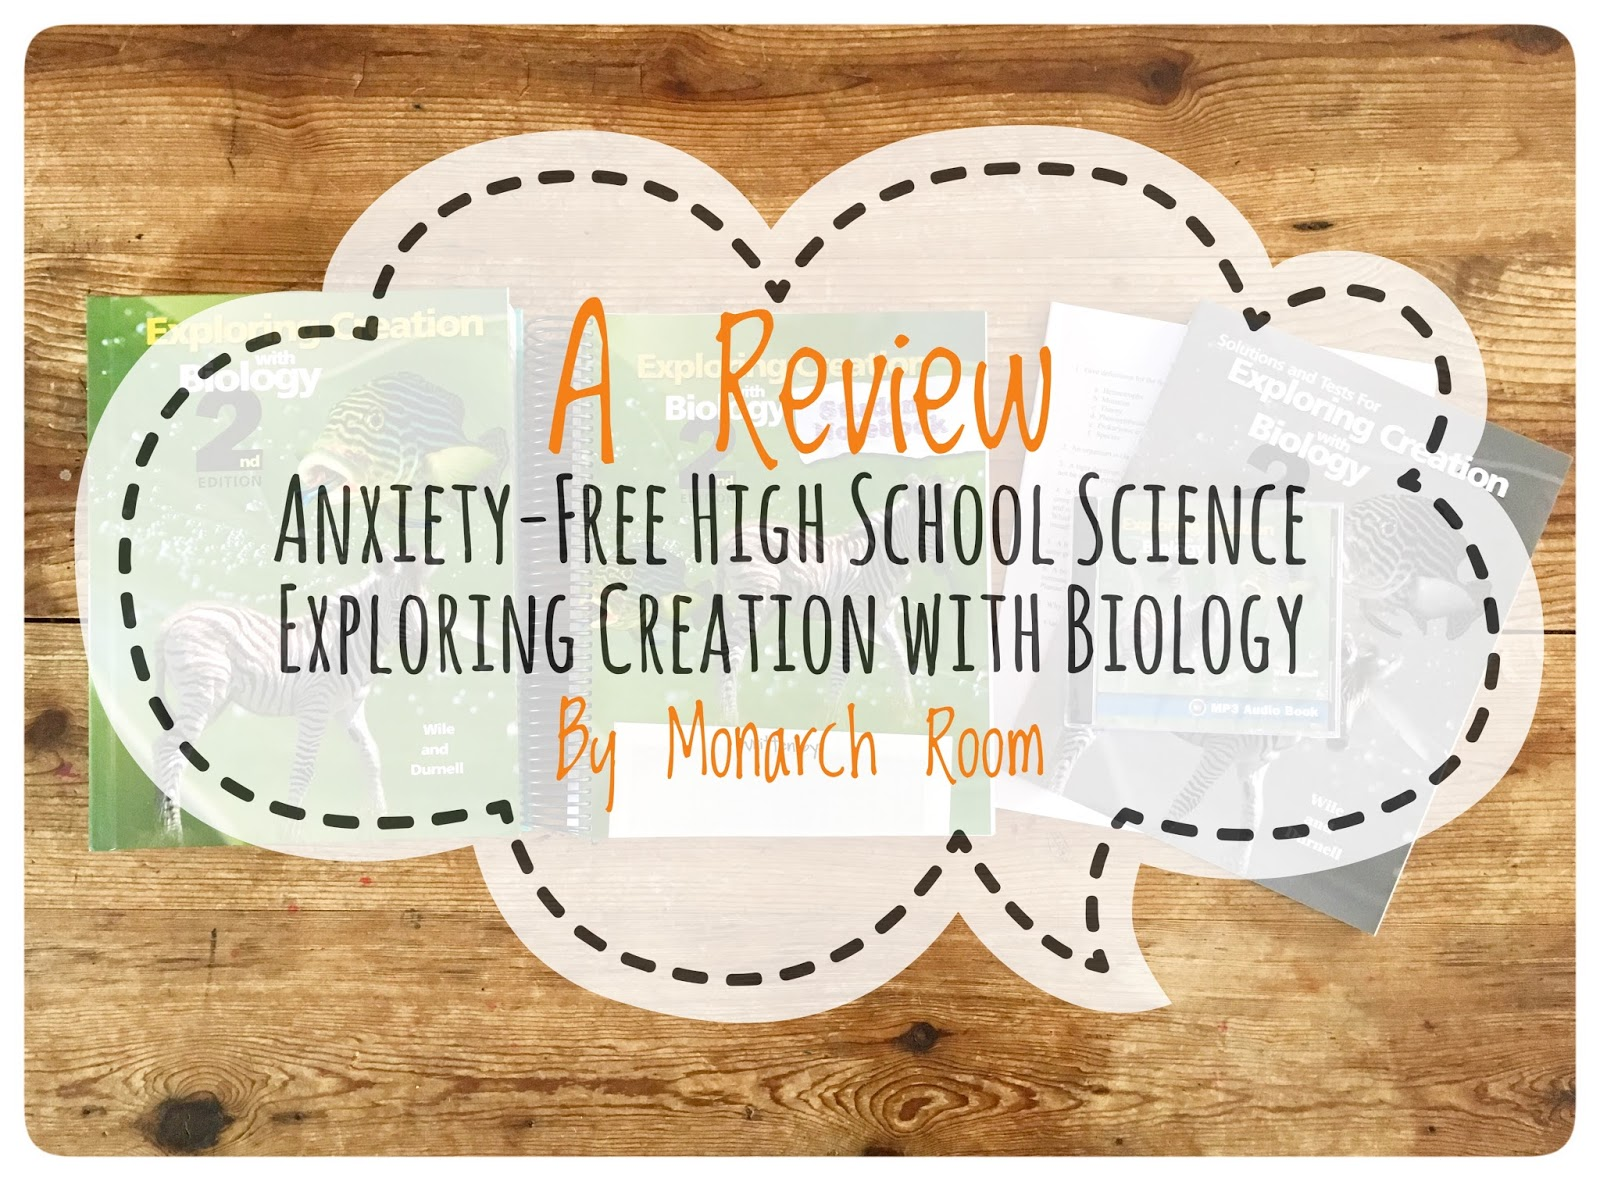 Monarch Room: Apologia - Exploring Creation with Biology {Review}